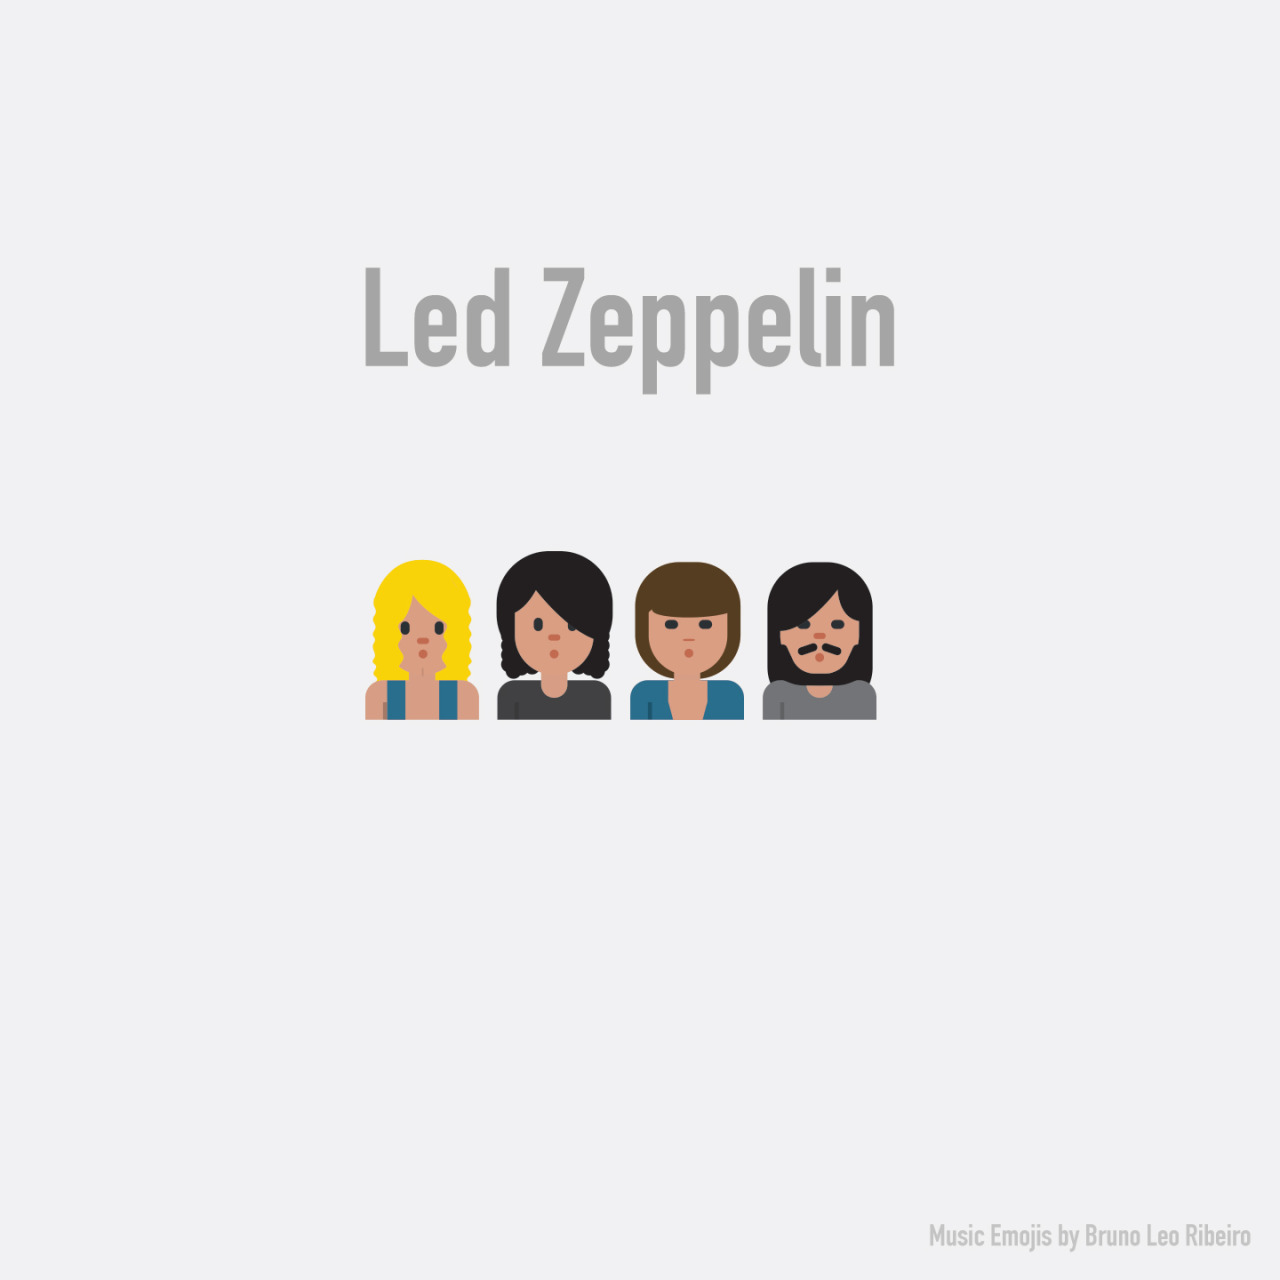 Led Zeppelin emoji